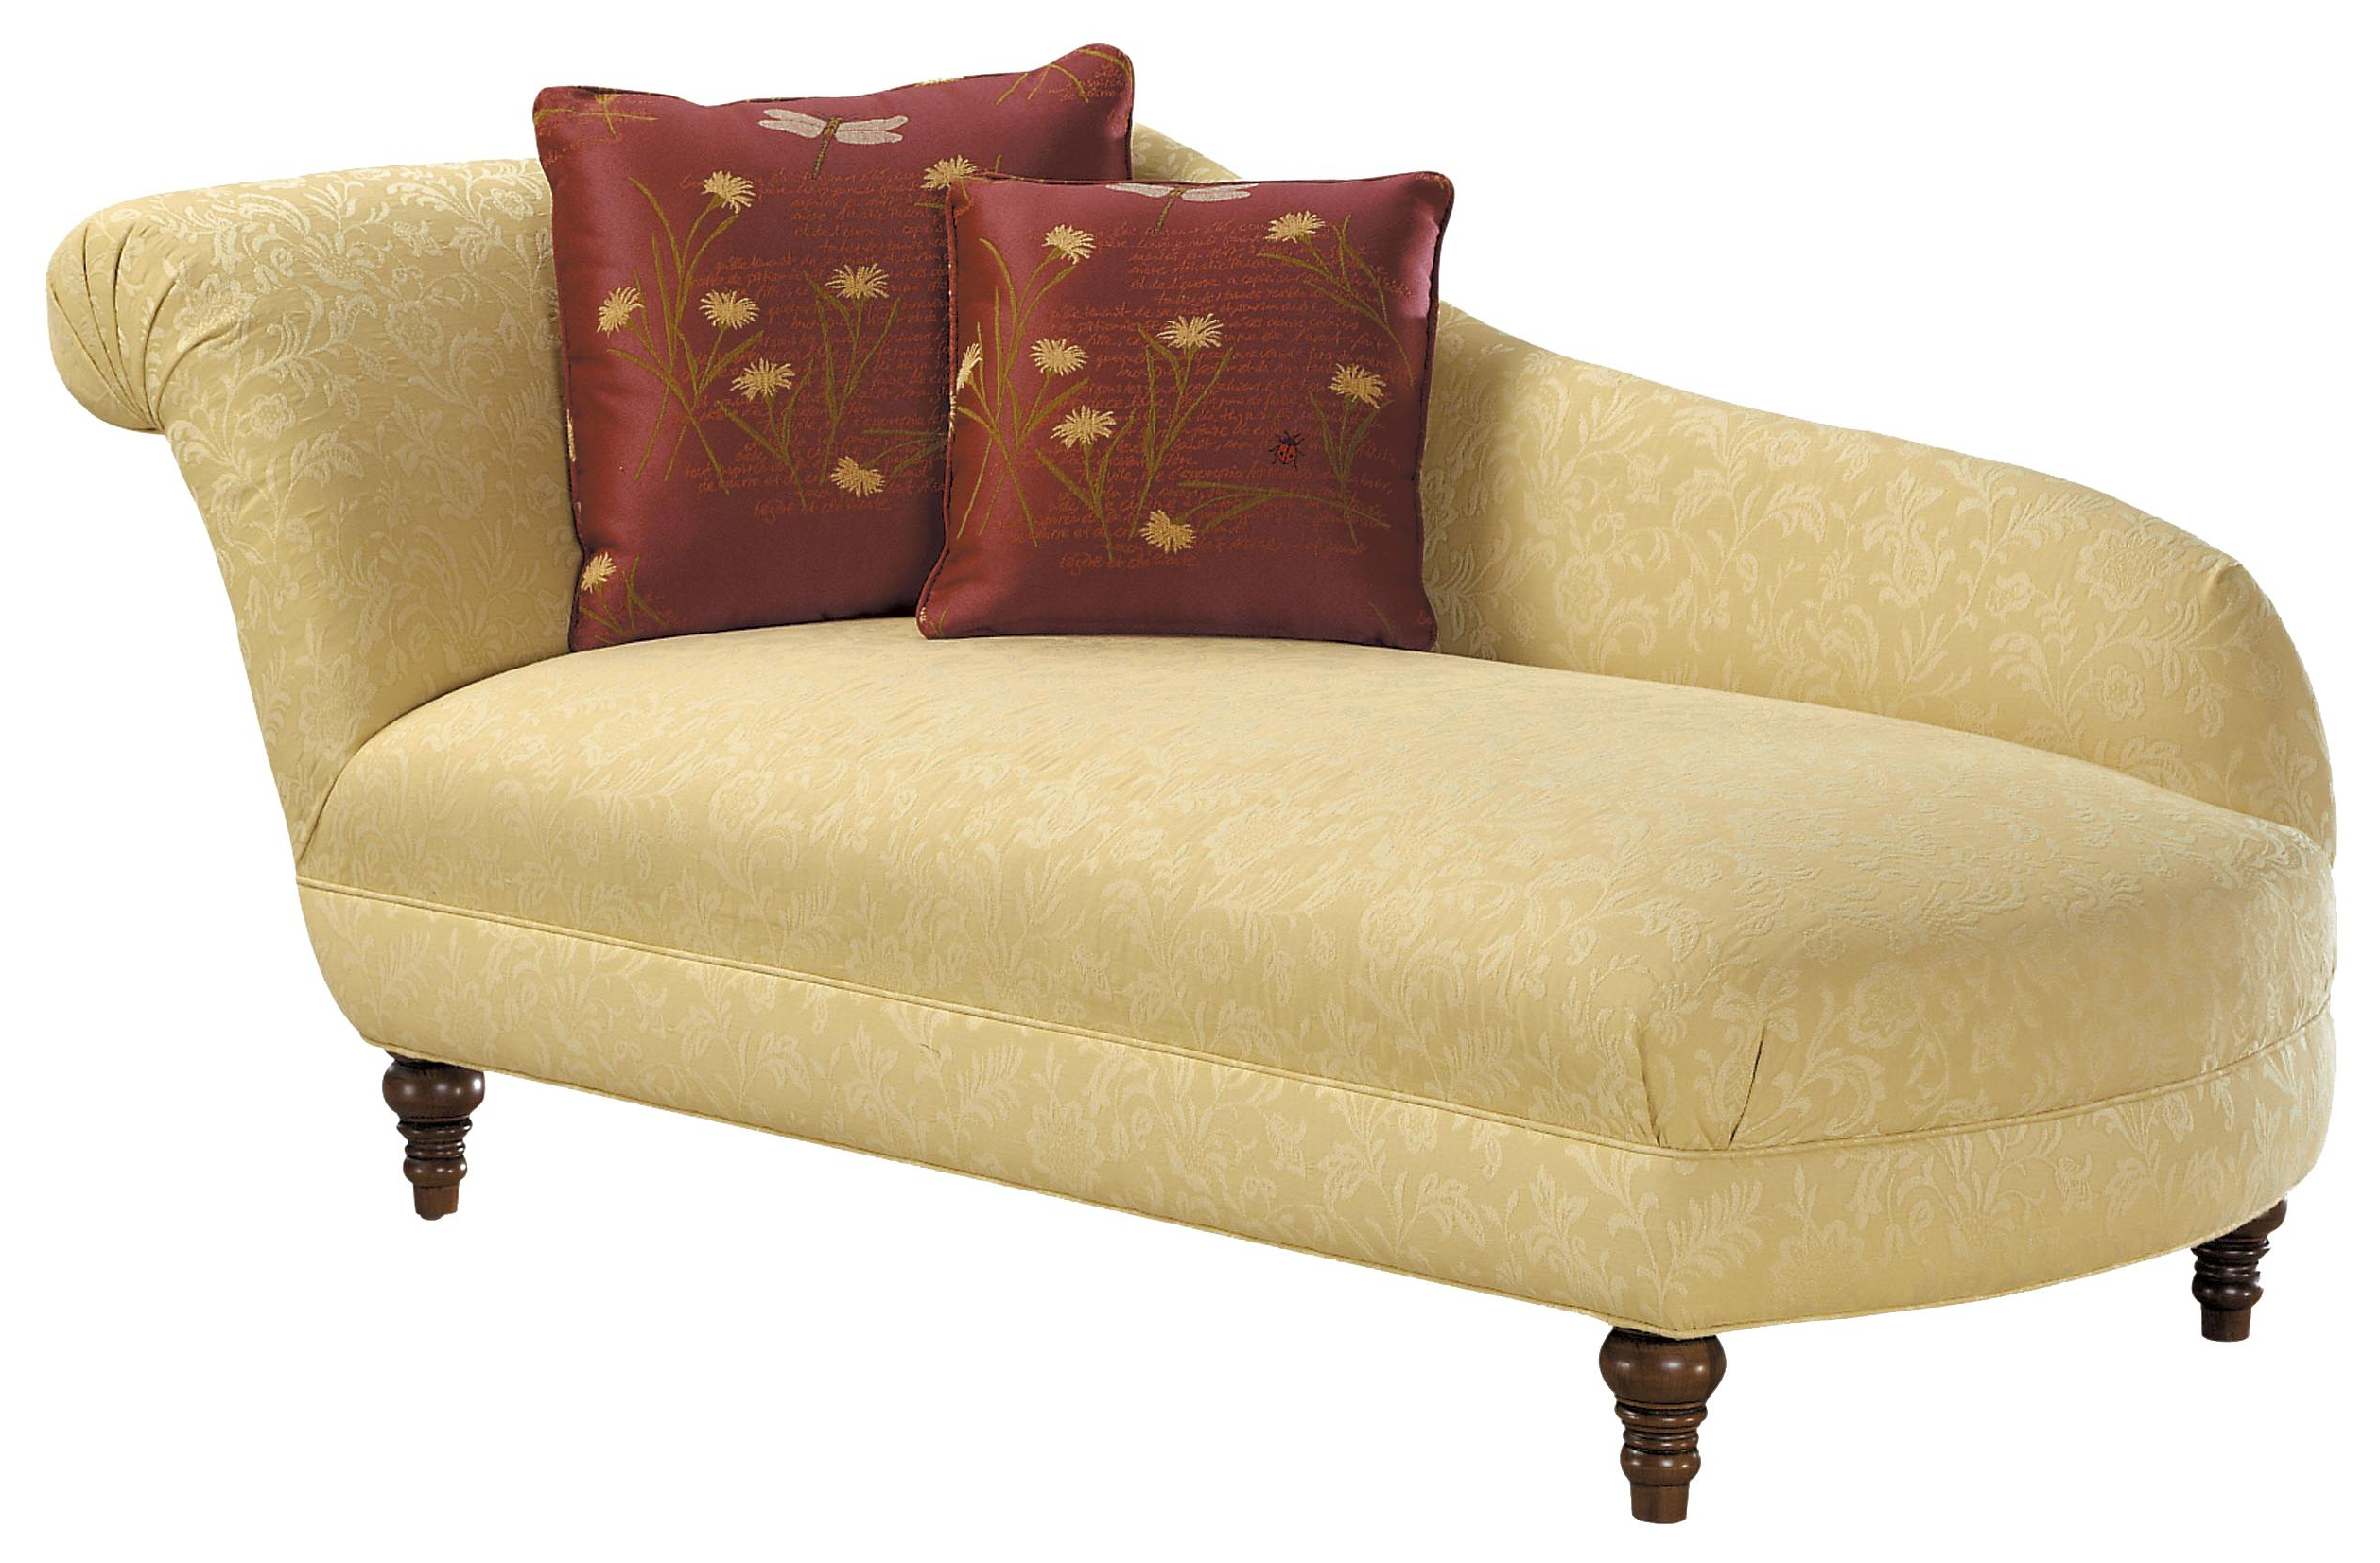 Chaise Sofa Chairs Intended For Most Current Fairfield Sofa Accents Traditional Styled Lounge Chaise (View 7 of 20)